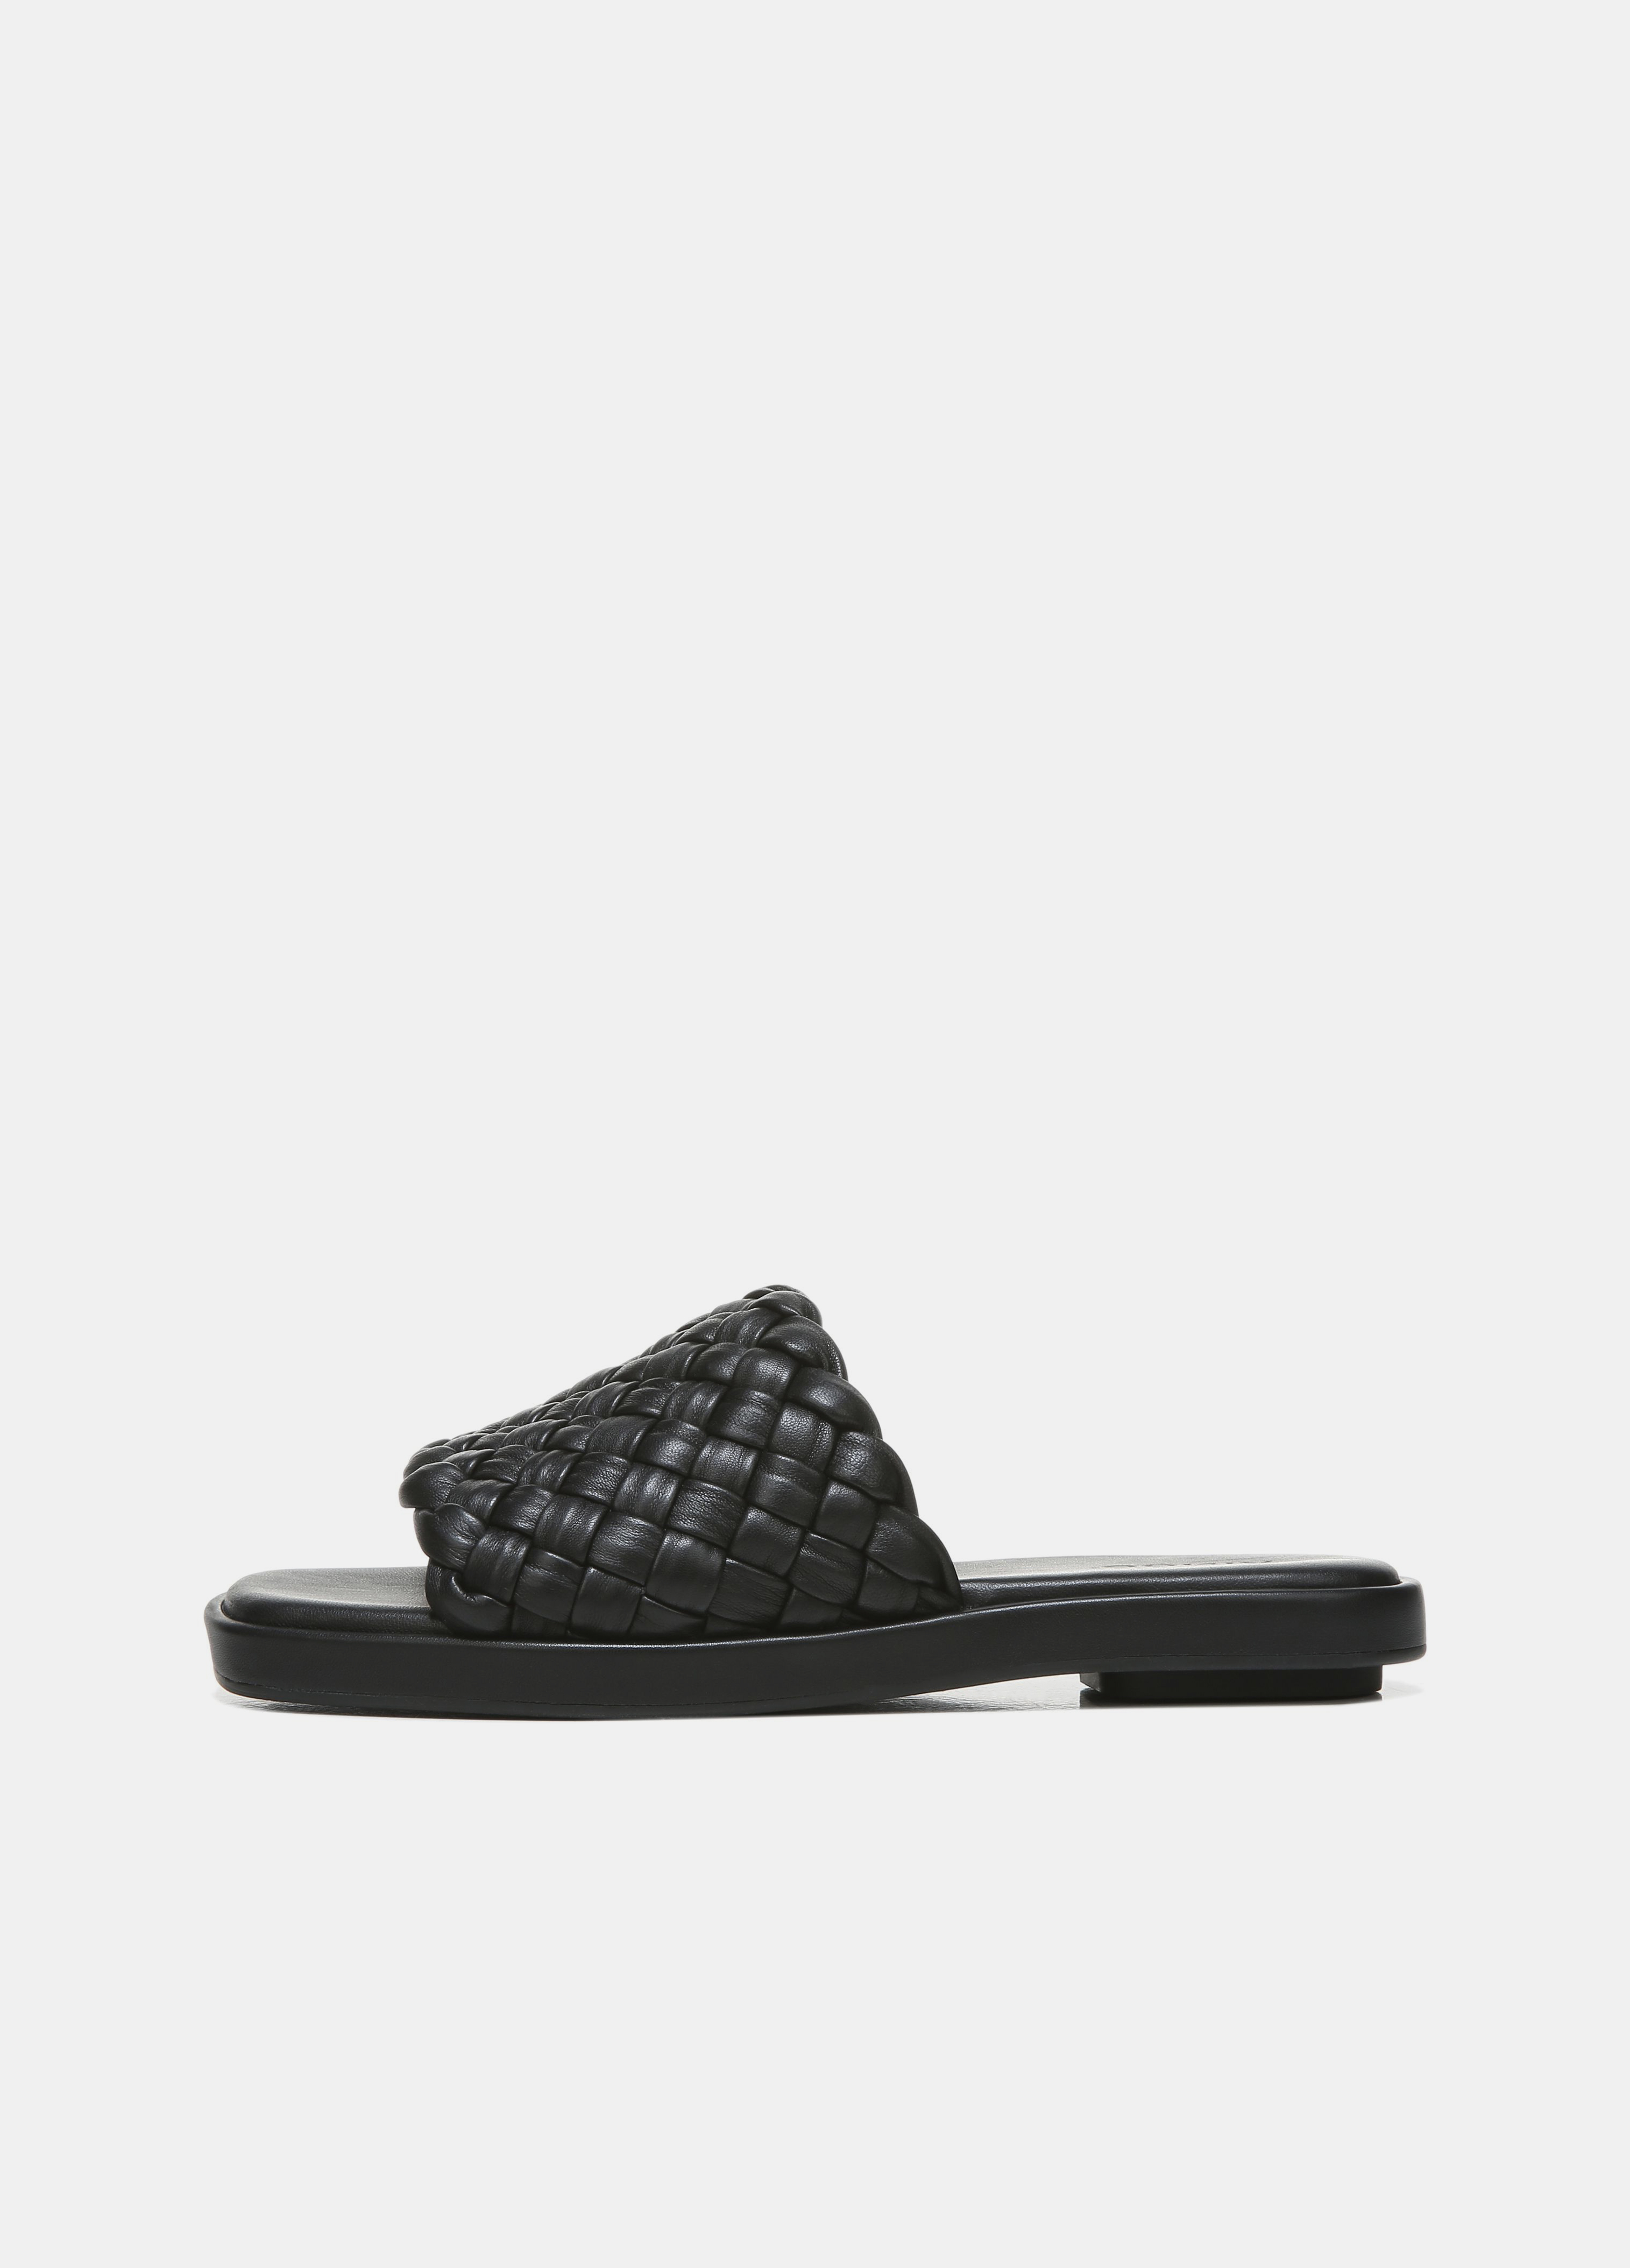 Rumi Woven Leather Slide